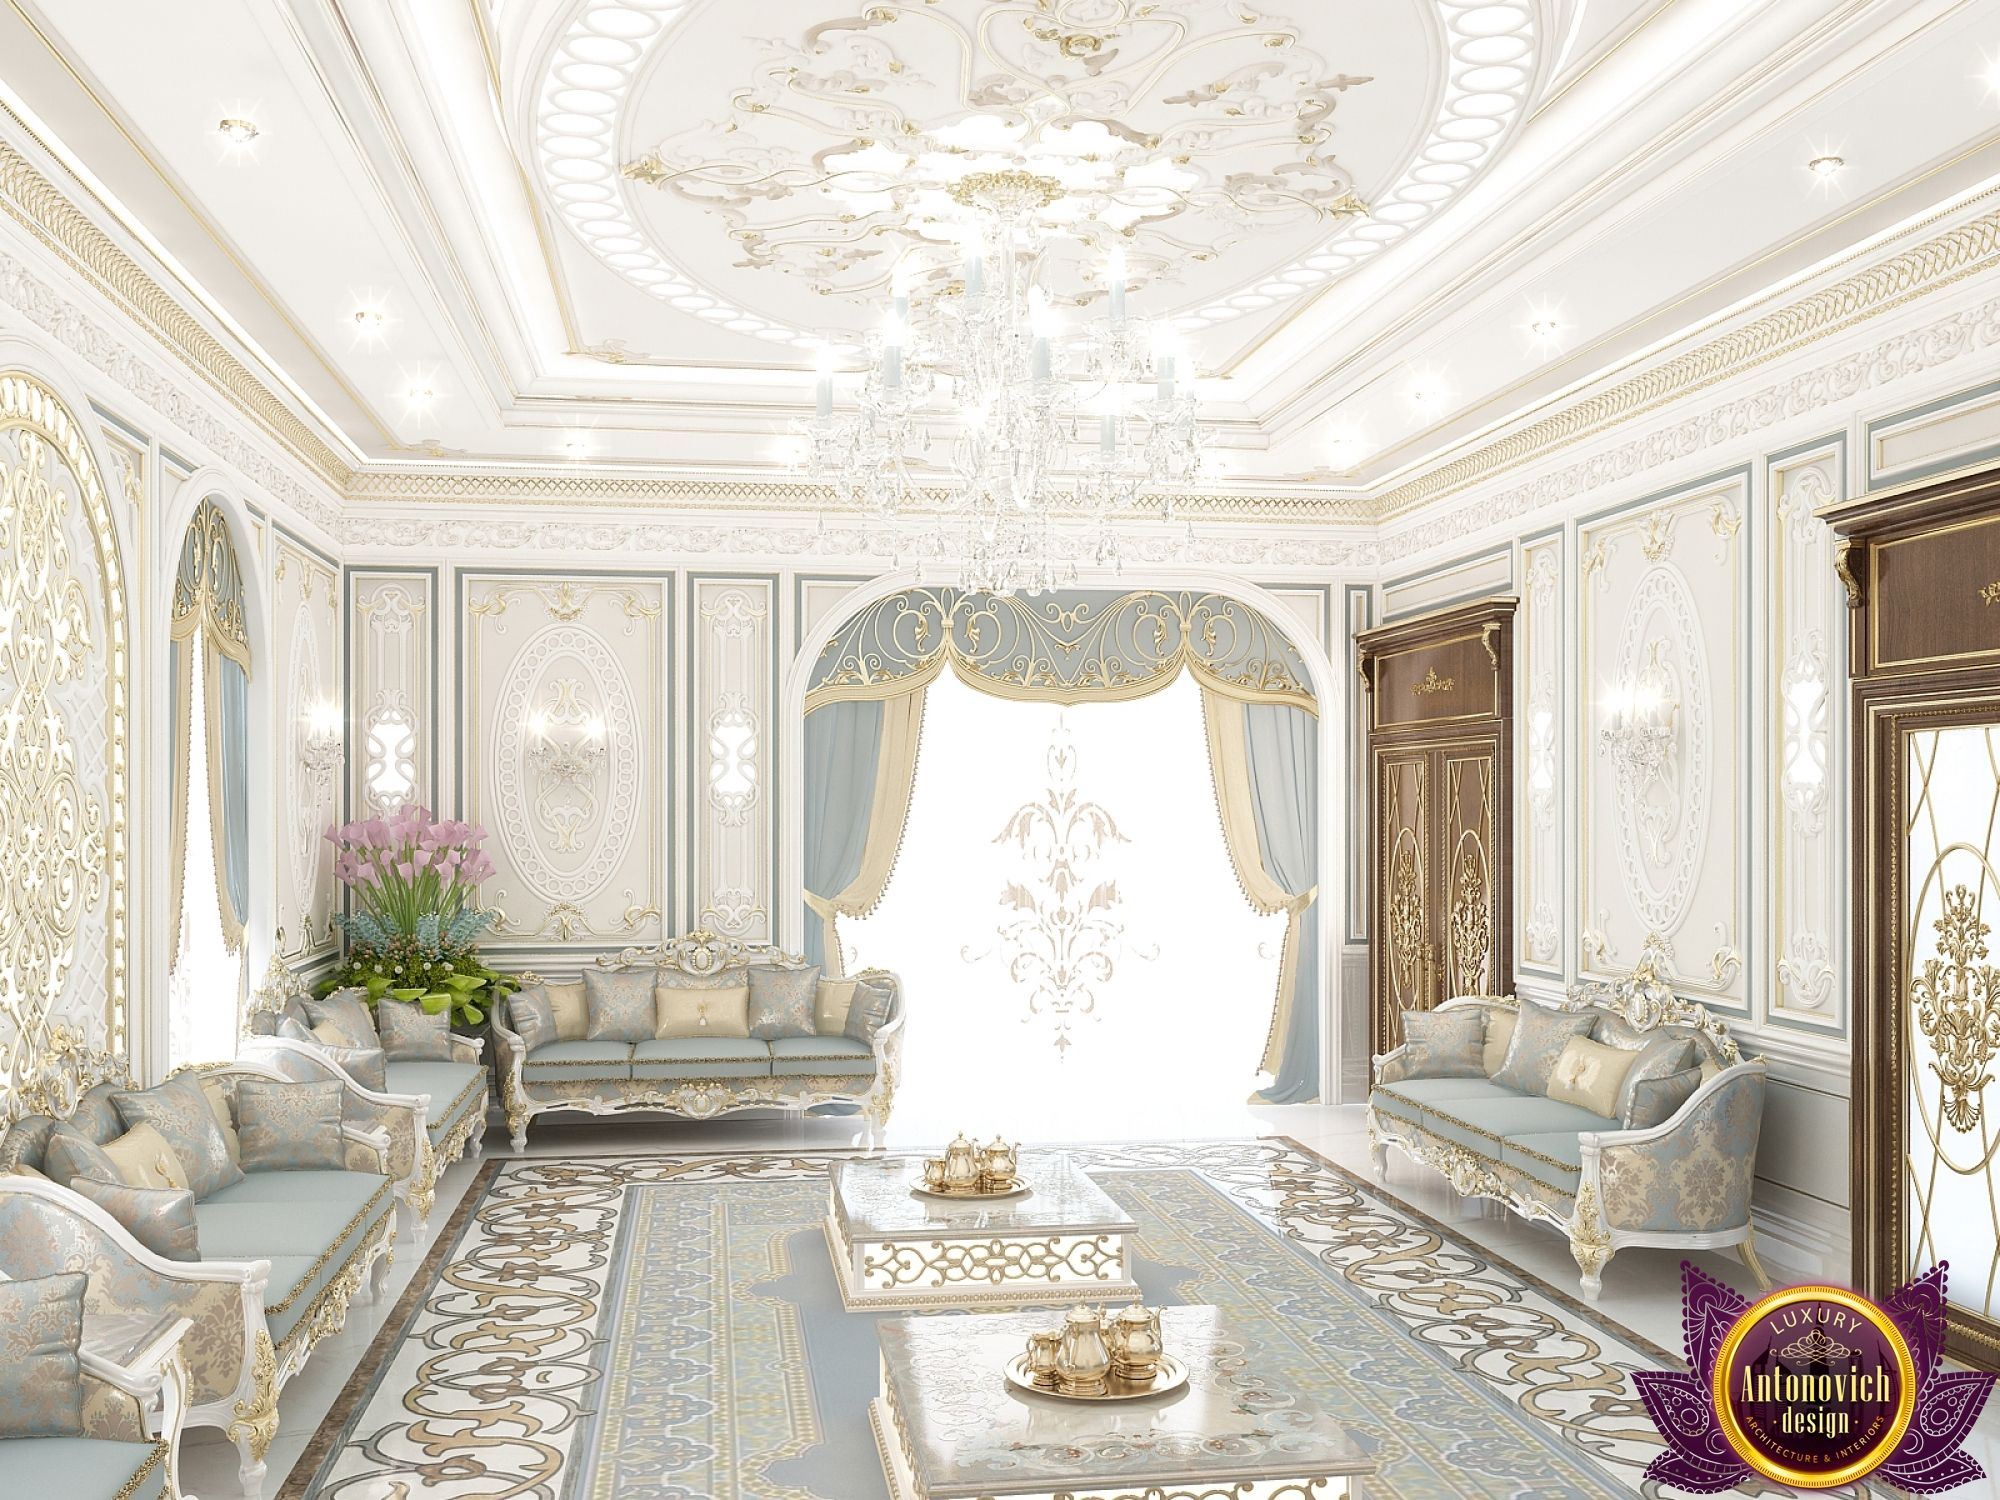 Majlis Interior Design In Dubai Royal UAE Photo 4